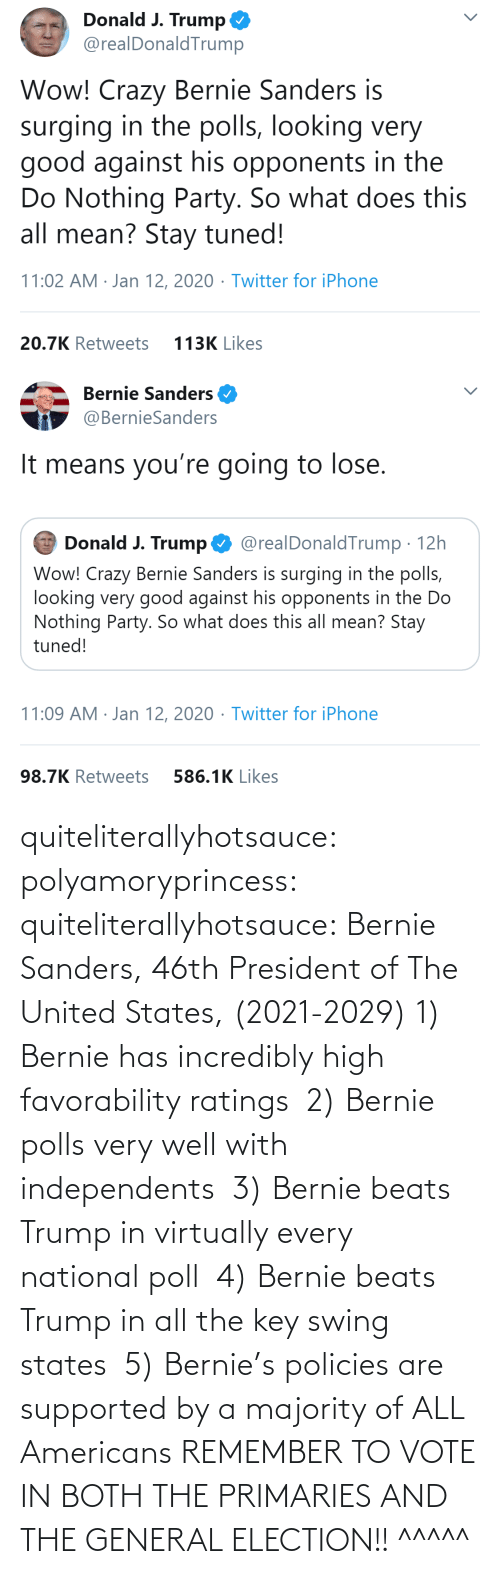 Trump: quiteliterallyhotsauce:  polyamoryprincess:  quiteliterallyhotsauce:   Bernie Sanders, 46th President of The United States, (2021-2029)    1) Bernie has incredibly high favorability ratings  2) Bernie polls very well with independents  3) Bernie beats Trump in virtually every national poll  4) Bernie beats Trump in all the key swing states  5) Bernie's policies are supported by a majority of ALL Americans    REMEMBER TO VOTE IN BOTH THE PRIMARIES AND THE GENERAL ELECTION!!  ^^^^^